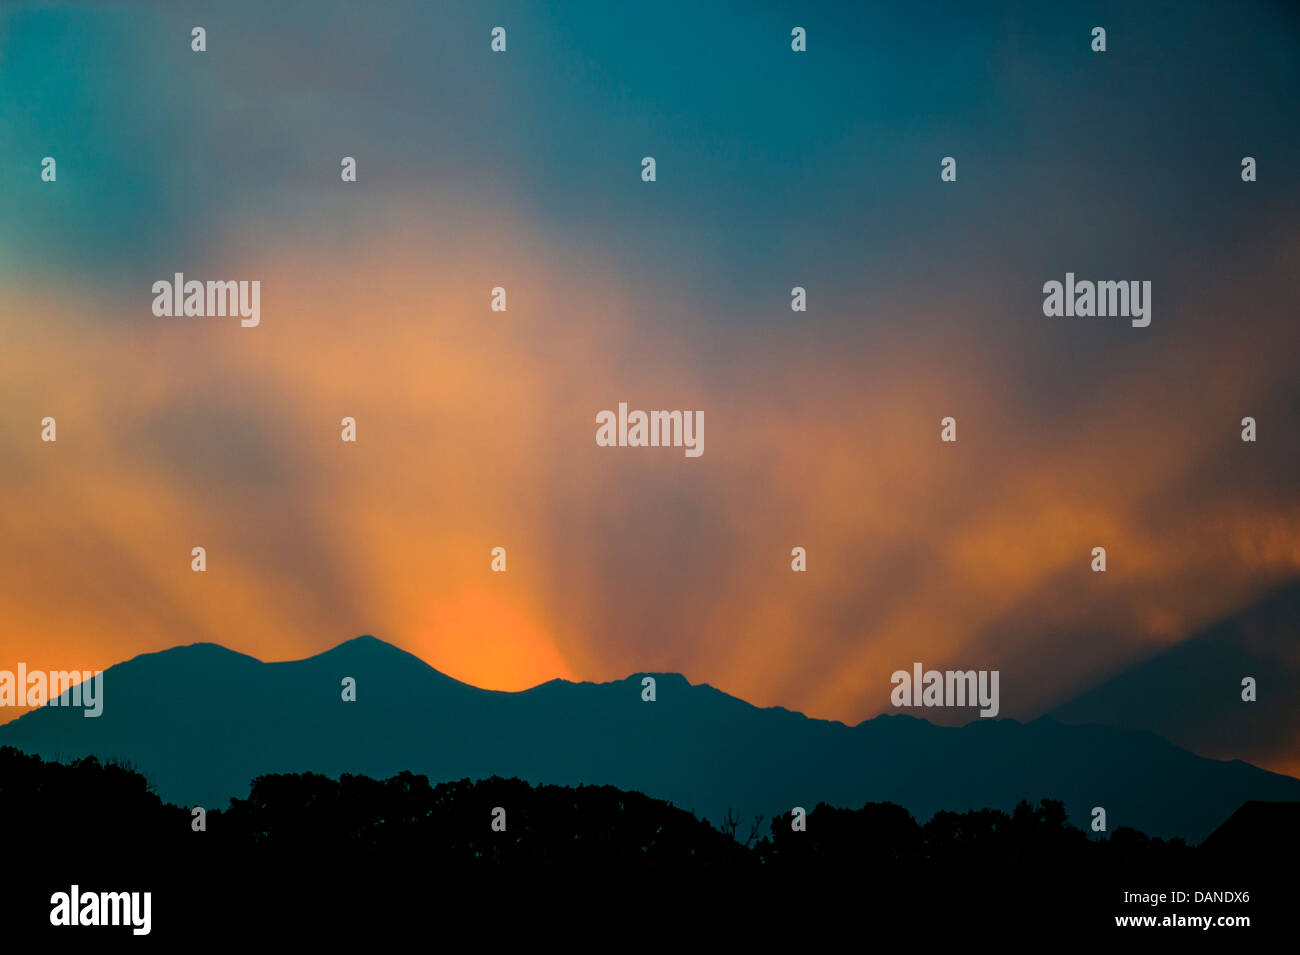 Beams of sunset light over the Rocky Mountains, Central Colorado, USA - Stock Image